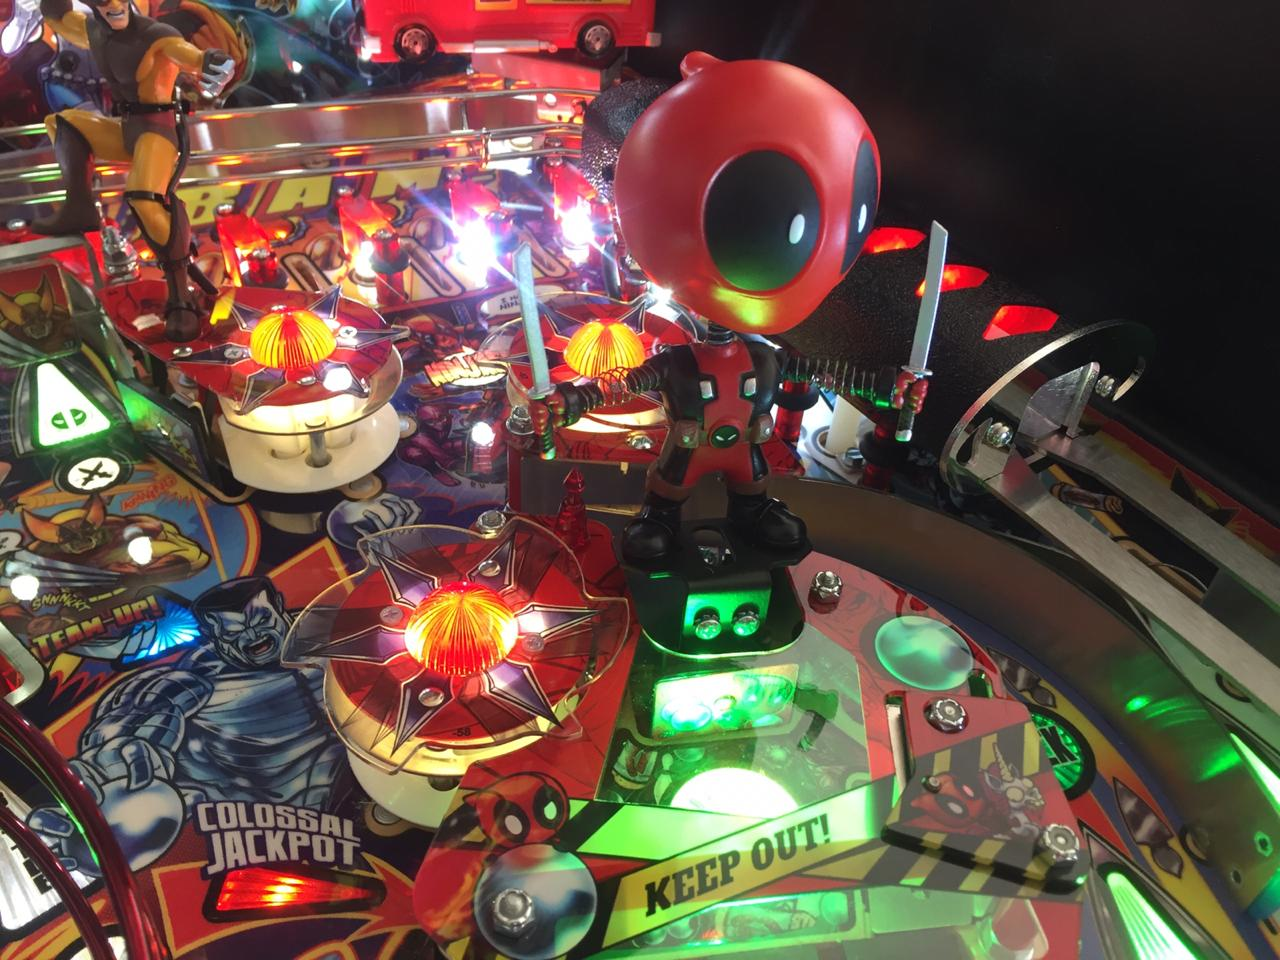 Deadpool Premium Pinball Machine by Stern for sale on order